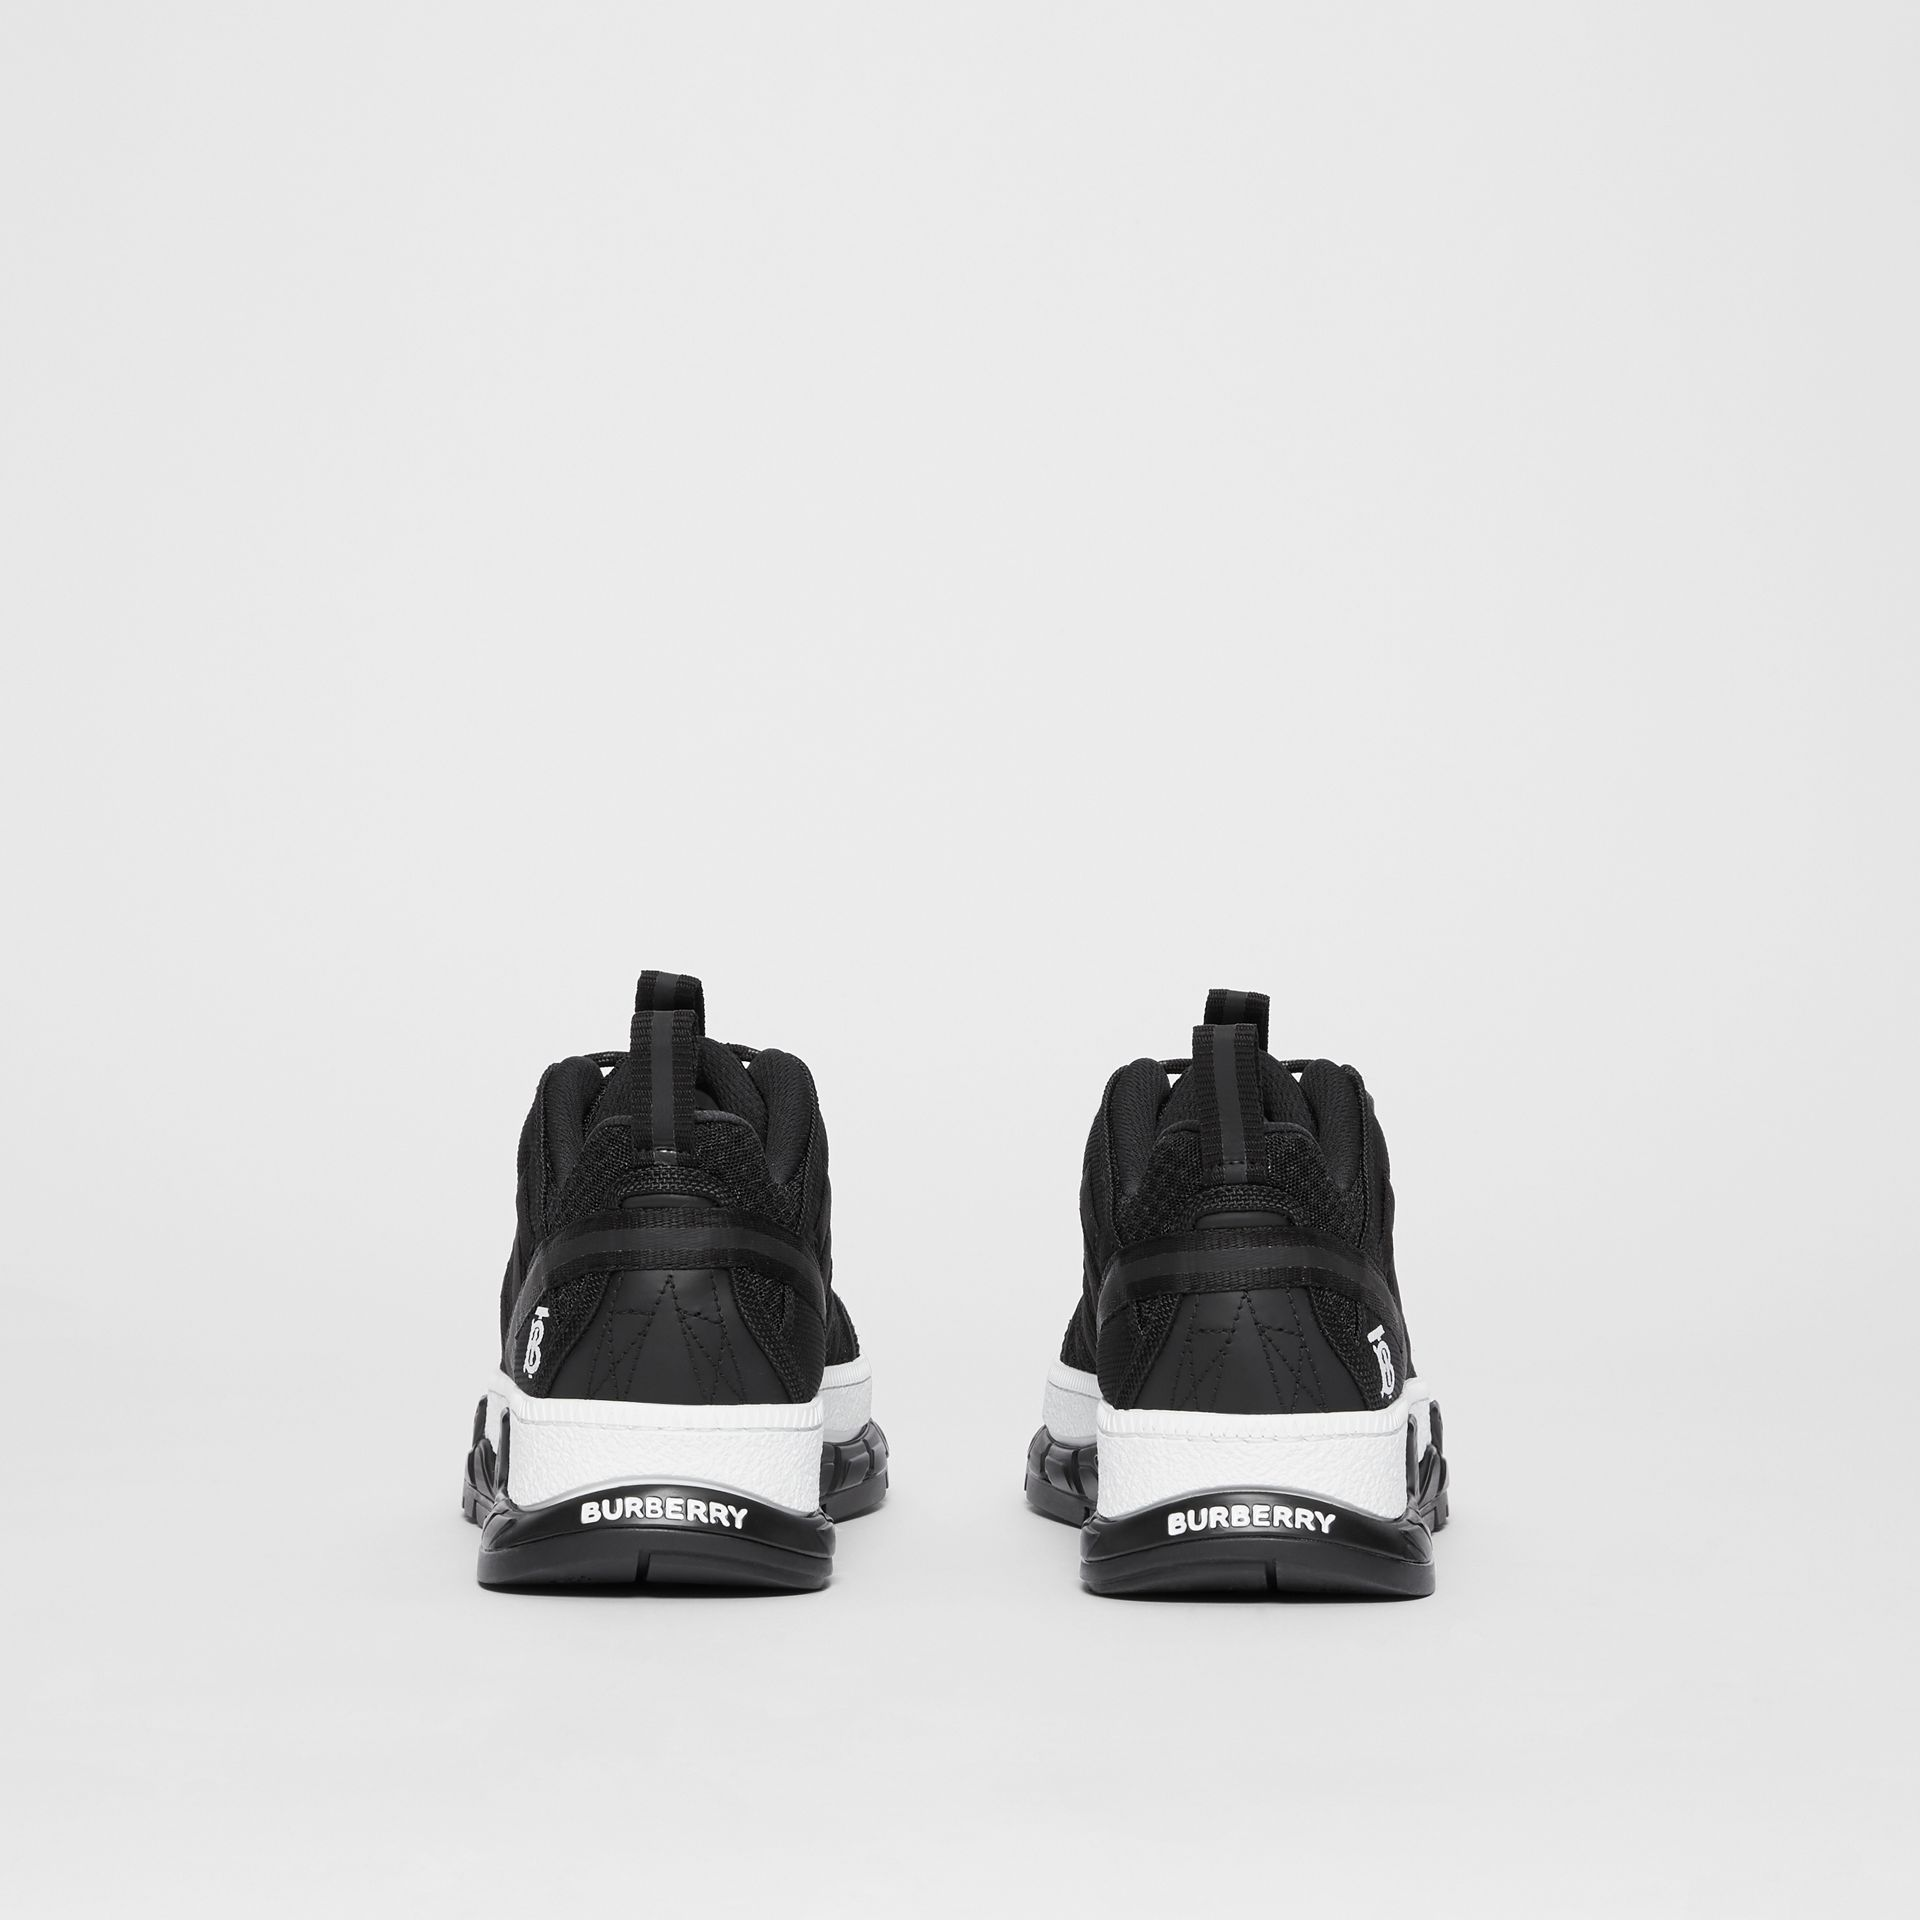 Sneakers Union en filet et nubuck (Noir) - Femme | Burberry - photo de la galerie 2